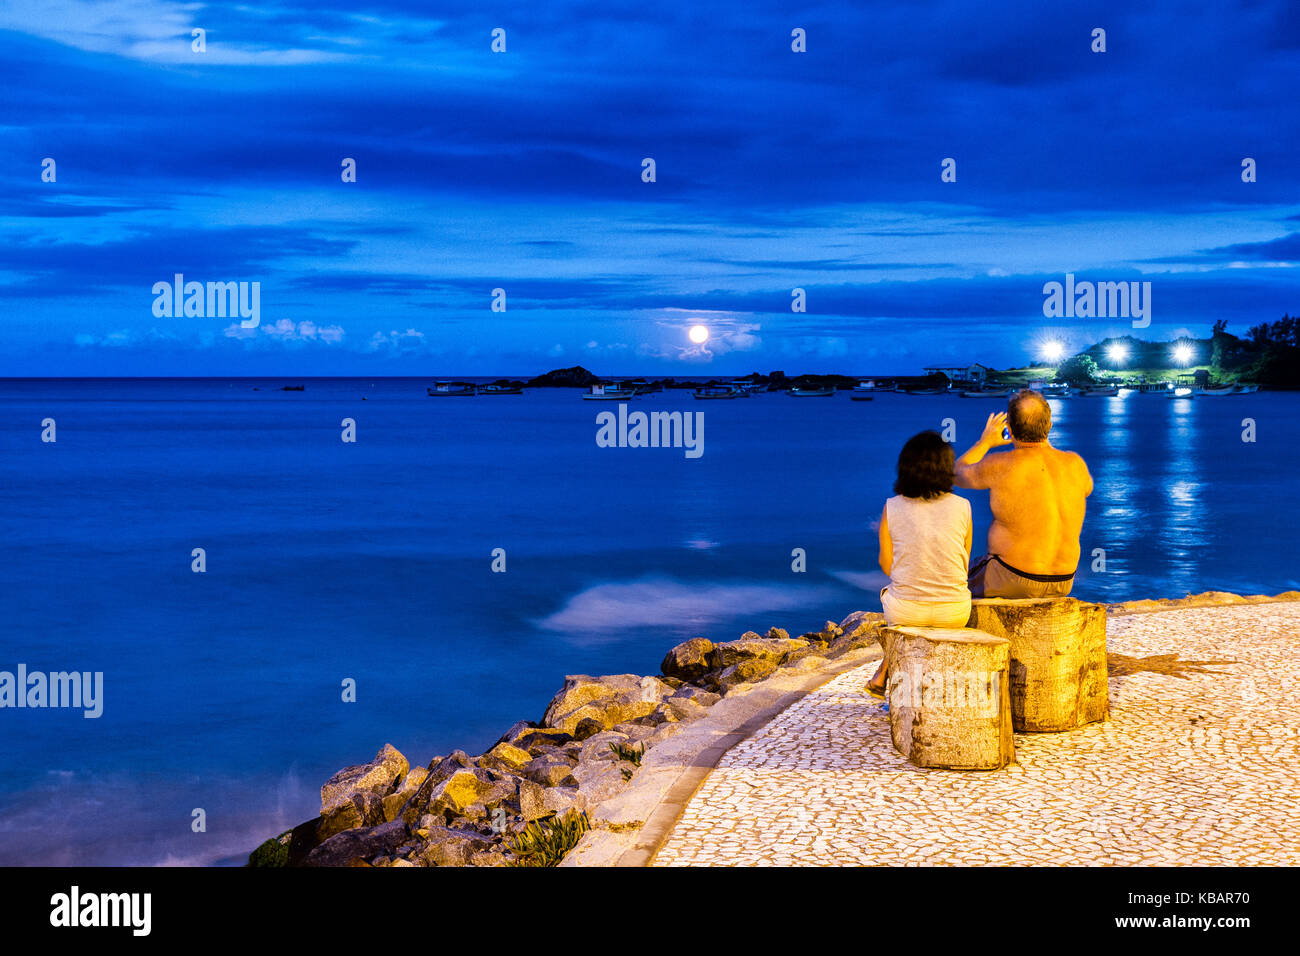 Mature couple watching full moon rising at Armacao Beach at dusk. Florianopolis, Santa Catarina, Brazil. - Stock Image